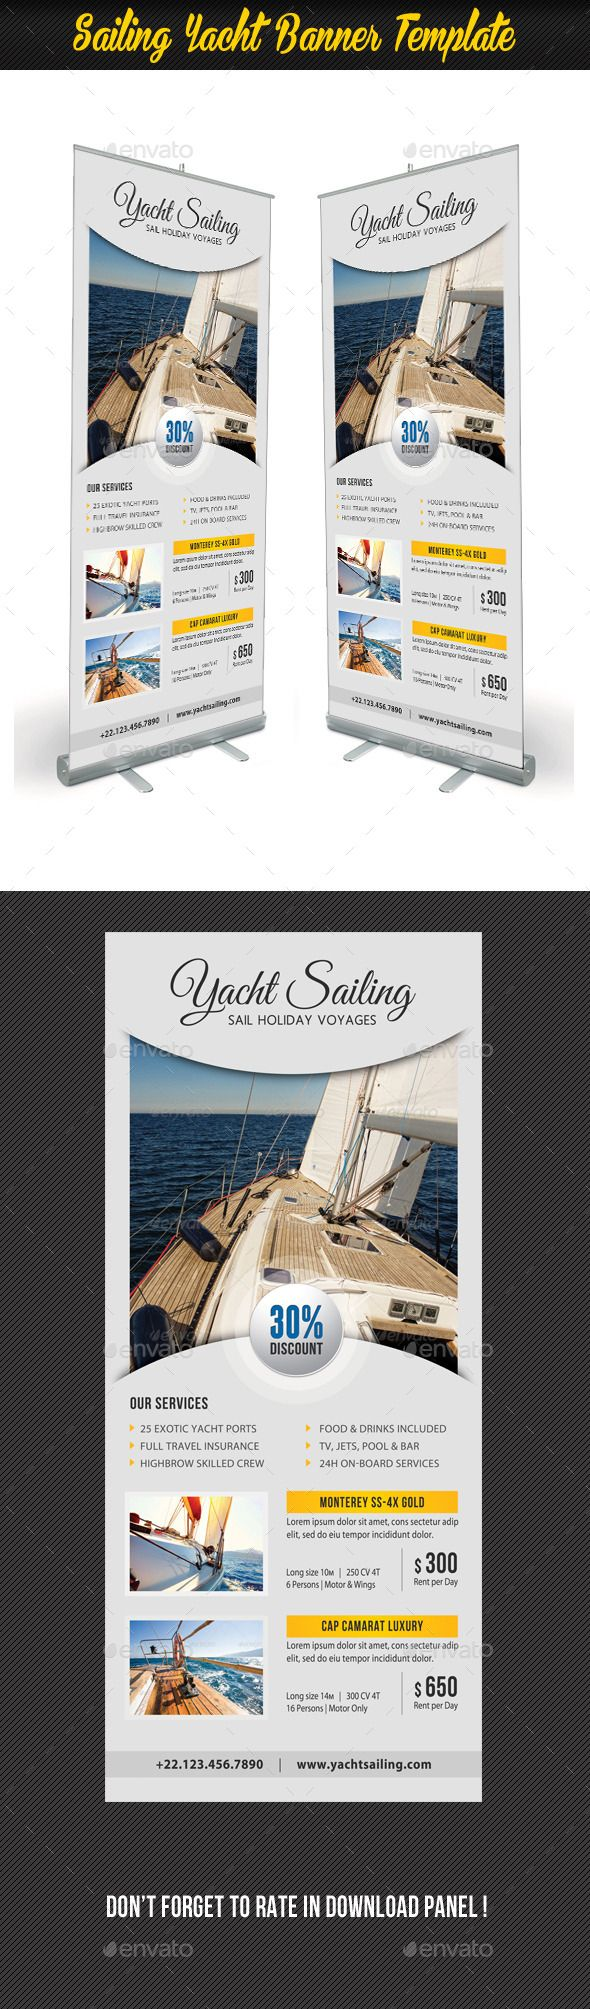 Sailing Yacht Banner Template #design Download: http://graphicriver.net/item/sailing-yacht-banner-template-06/11854861?ref=ksioks